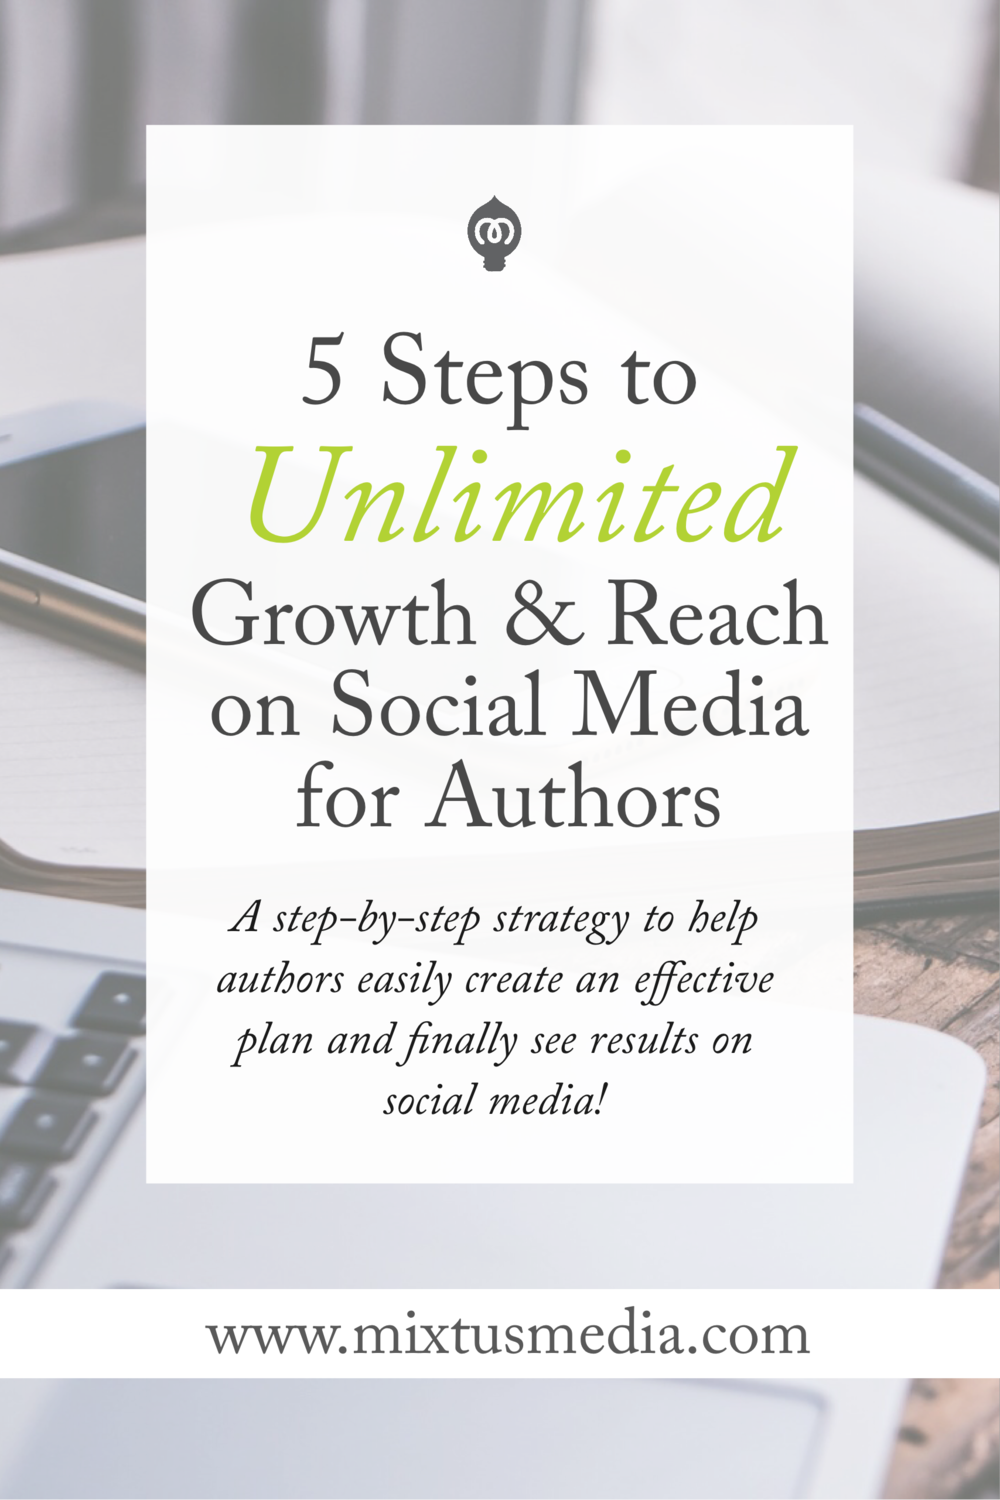 A step-by-step strategy to help authors easily create an effective plan to finally see results on social media.